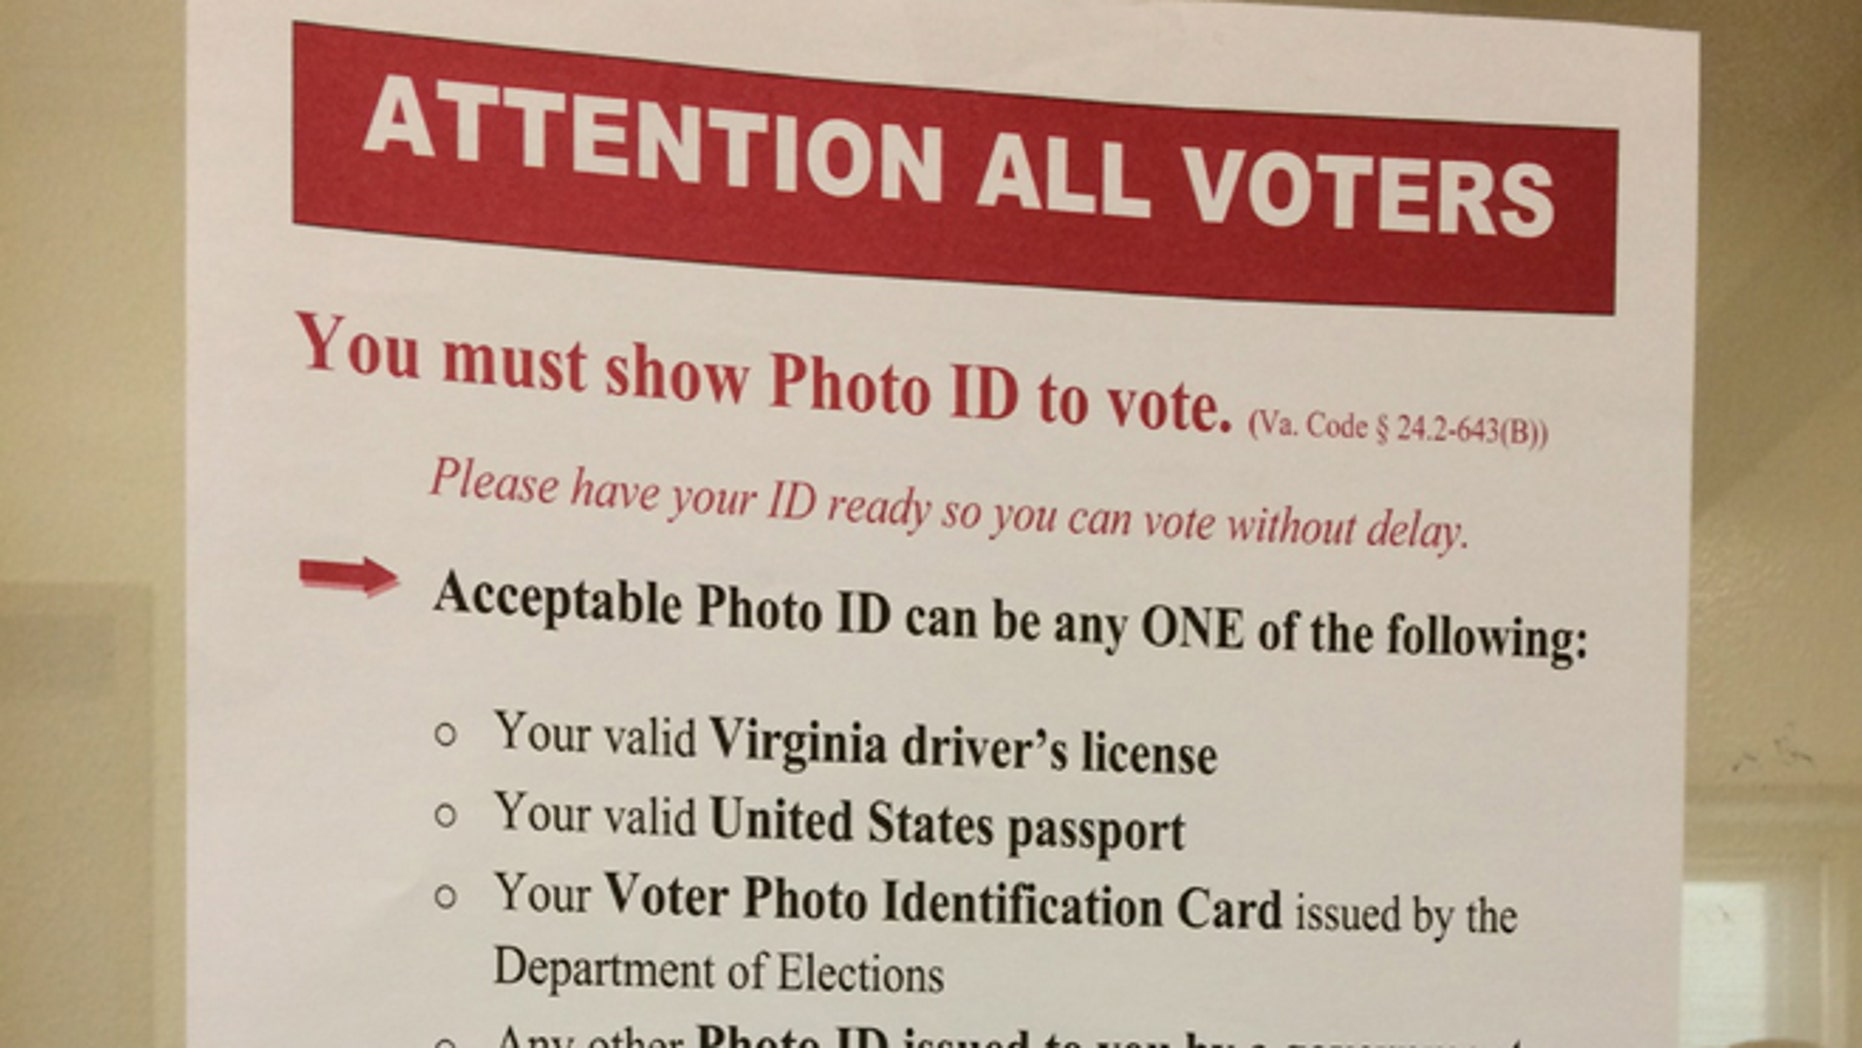 The new state rules are posted prominently at the Lee Center in Alexandria, Va., where the state began checking photo identification for registered voters on Tuesday, Nov. 4, 2014. (Julie Moos/McClatchyDC)